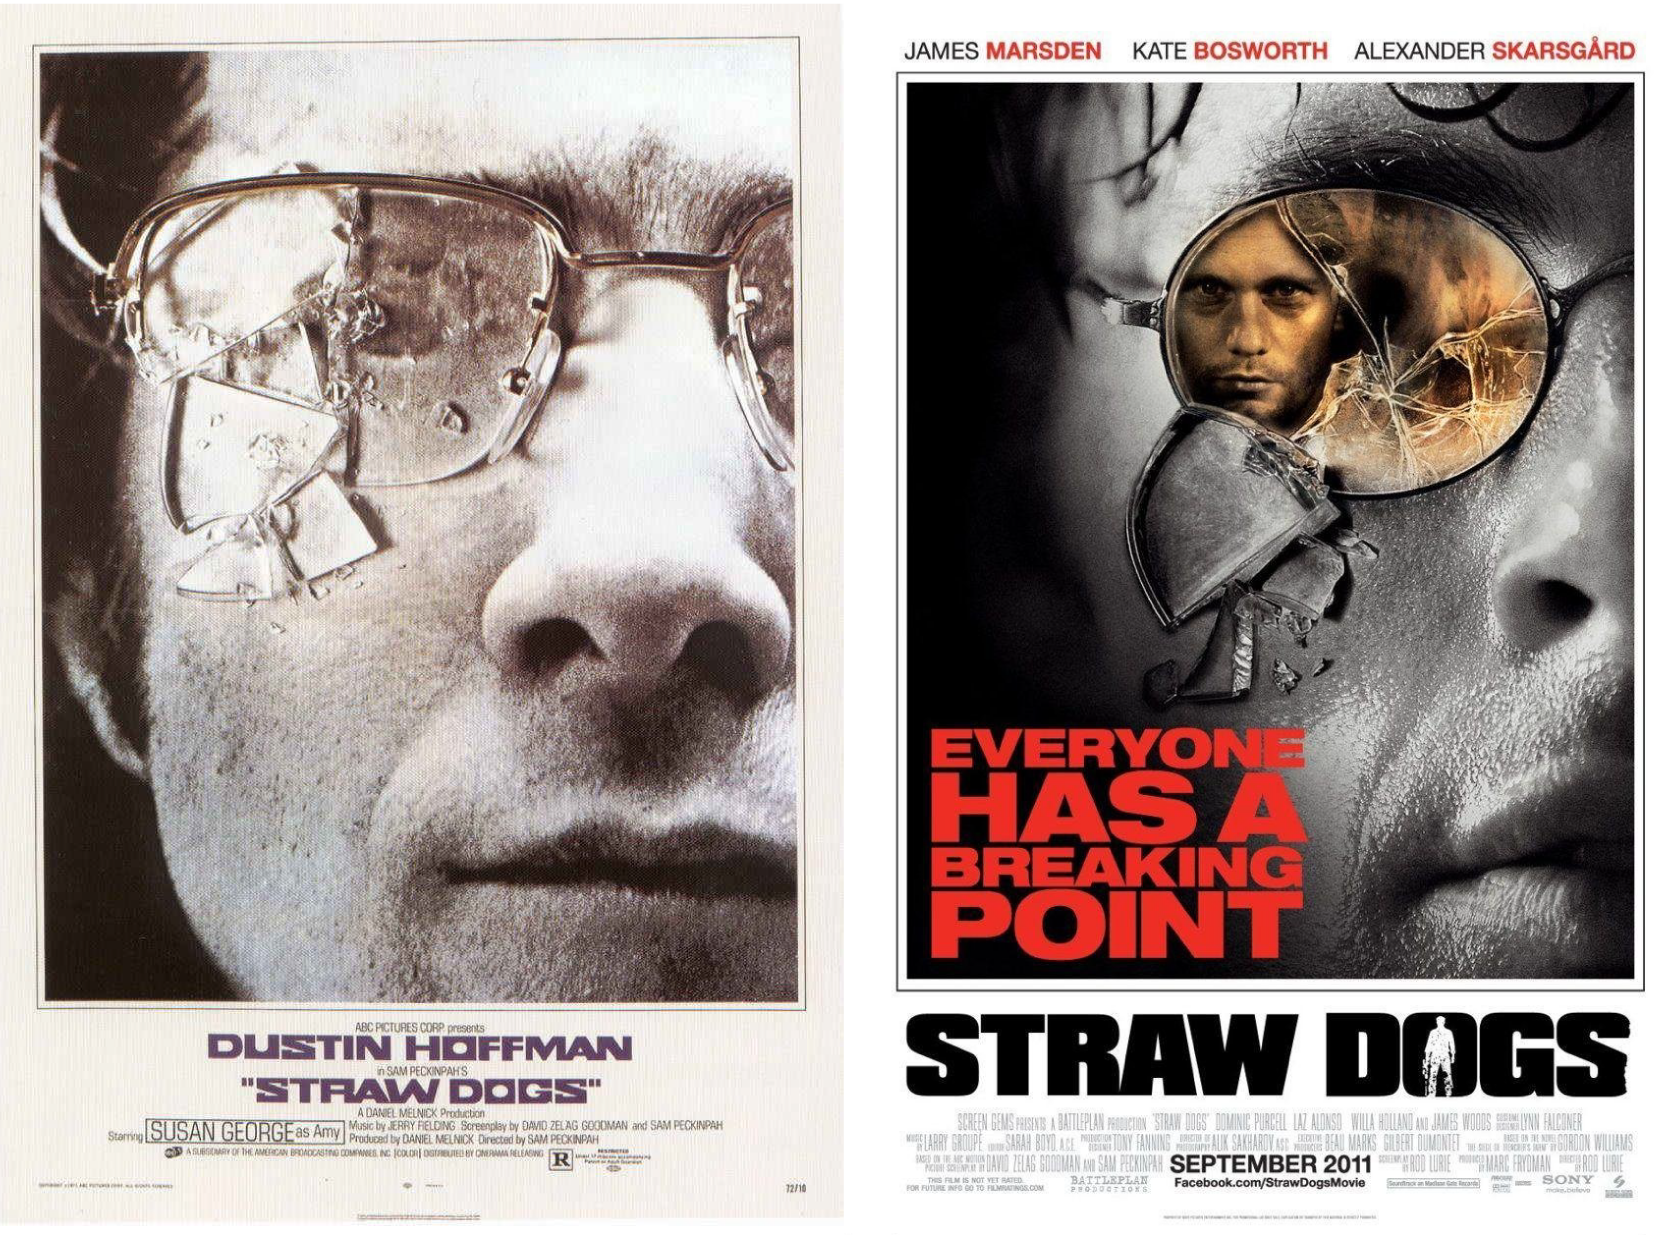 Straw Dogs Guardian Review